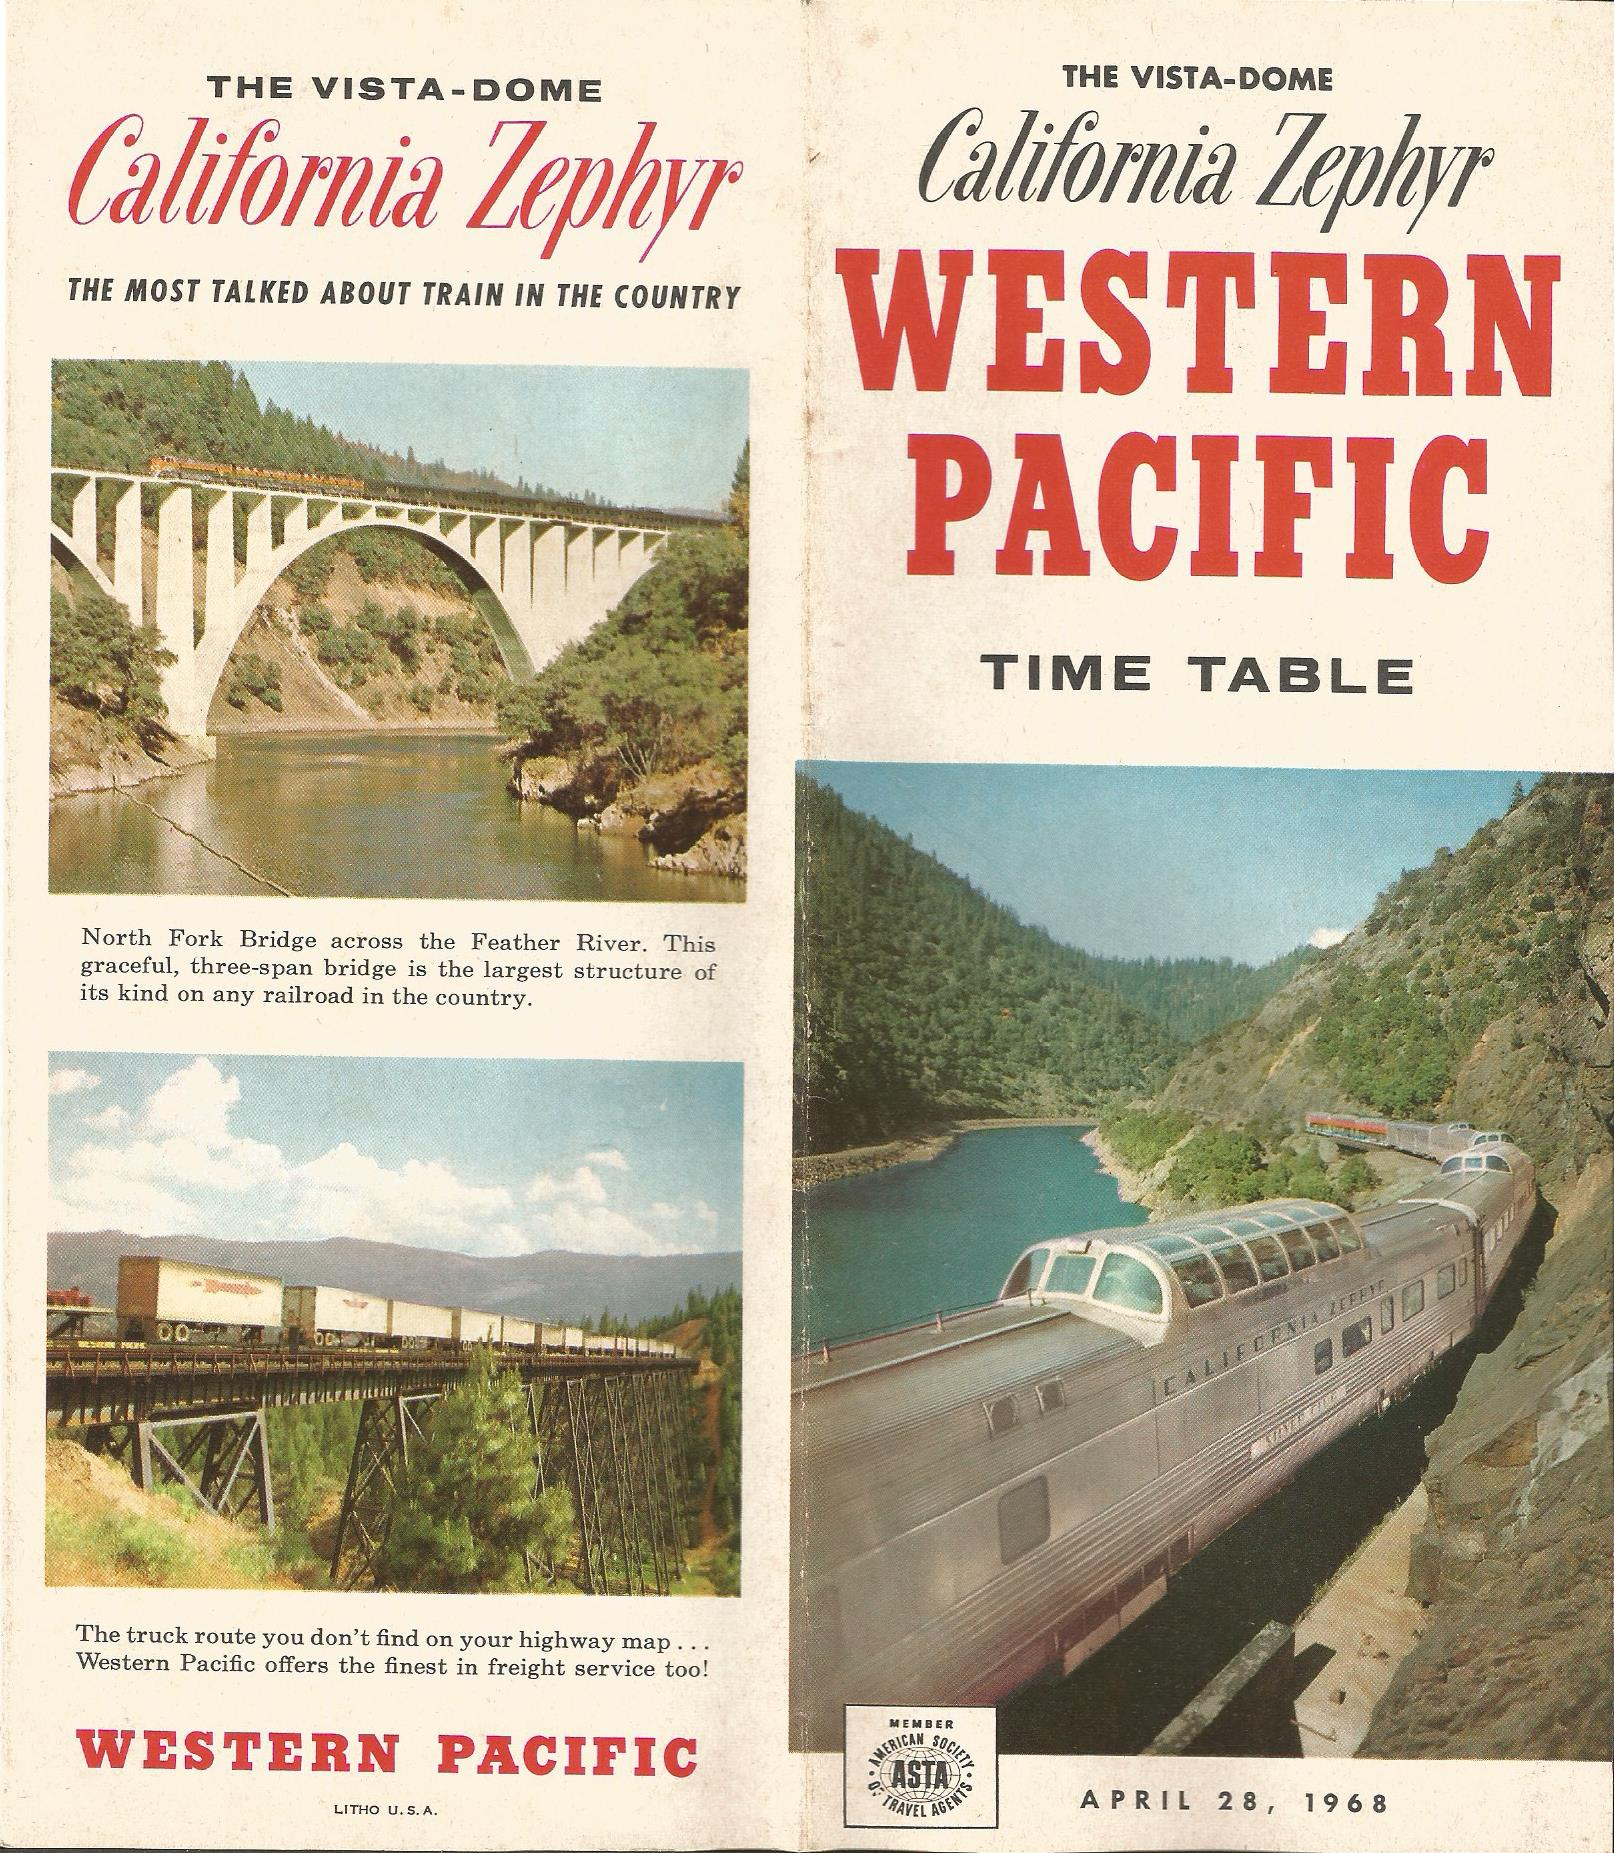 Amtrak California Zephyr predecessor, from Western Pacific ... on southern pacific rail map, western pacific map map, western pacific products, air pacific route map, western airlines route map 1985, northern pacific route map, pacific railroad map, union pacific route map, western pacific feather river route, norfolk & western route map, north fork southern railroad map, western pacific weather, western pacific airlines, western pacific cars, feather river canyon map, southern pacific route map, missouri pacific route map, chicago railroad map, central pacific route map, california railroad map,